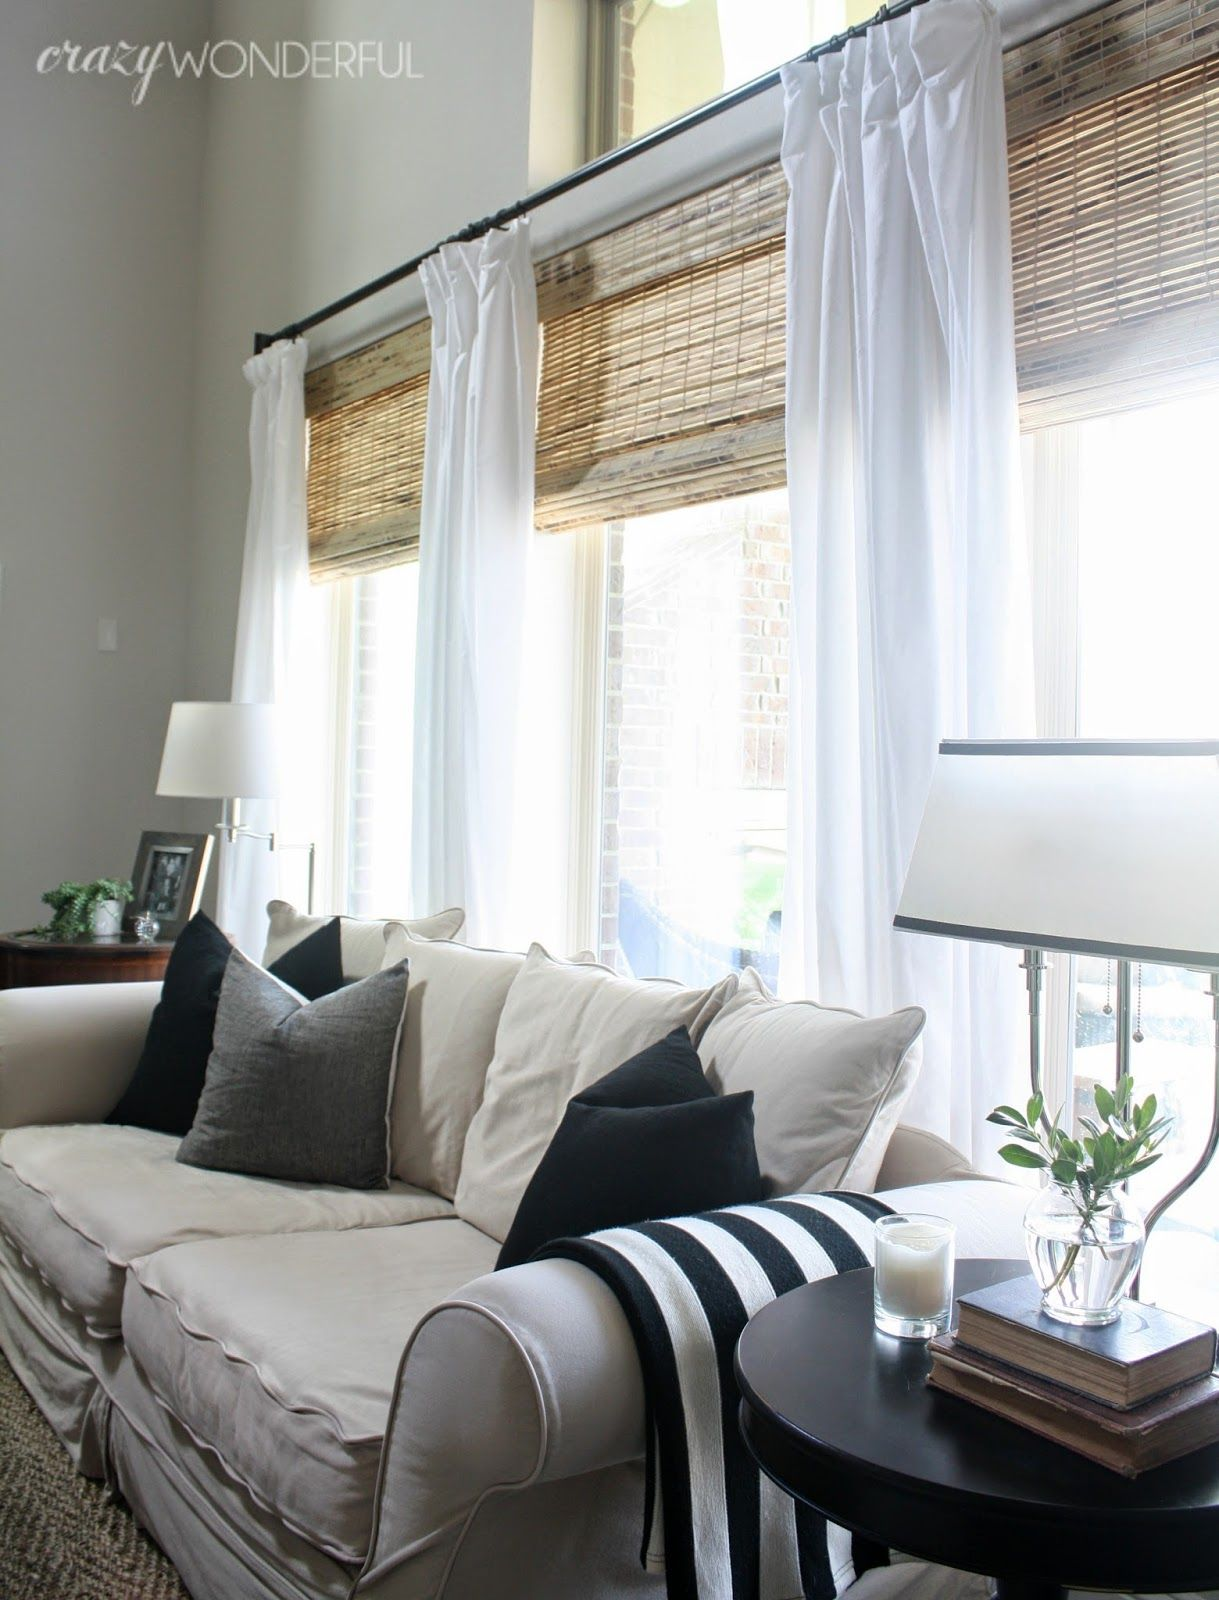 Crazy Wonderful: new couch pillows | Vignettes + Details | Pinterest ...